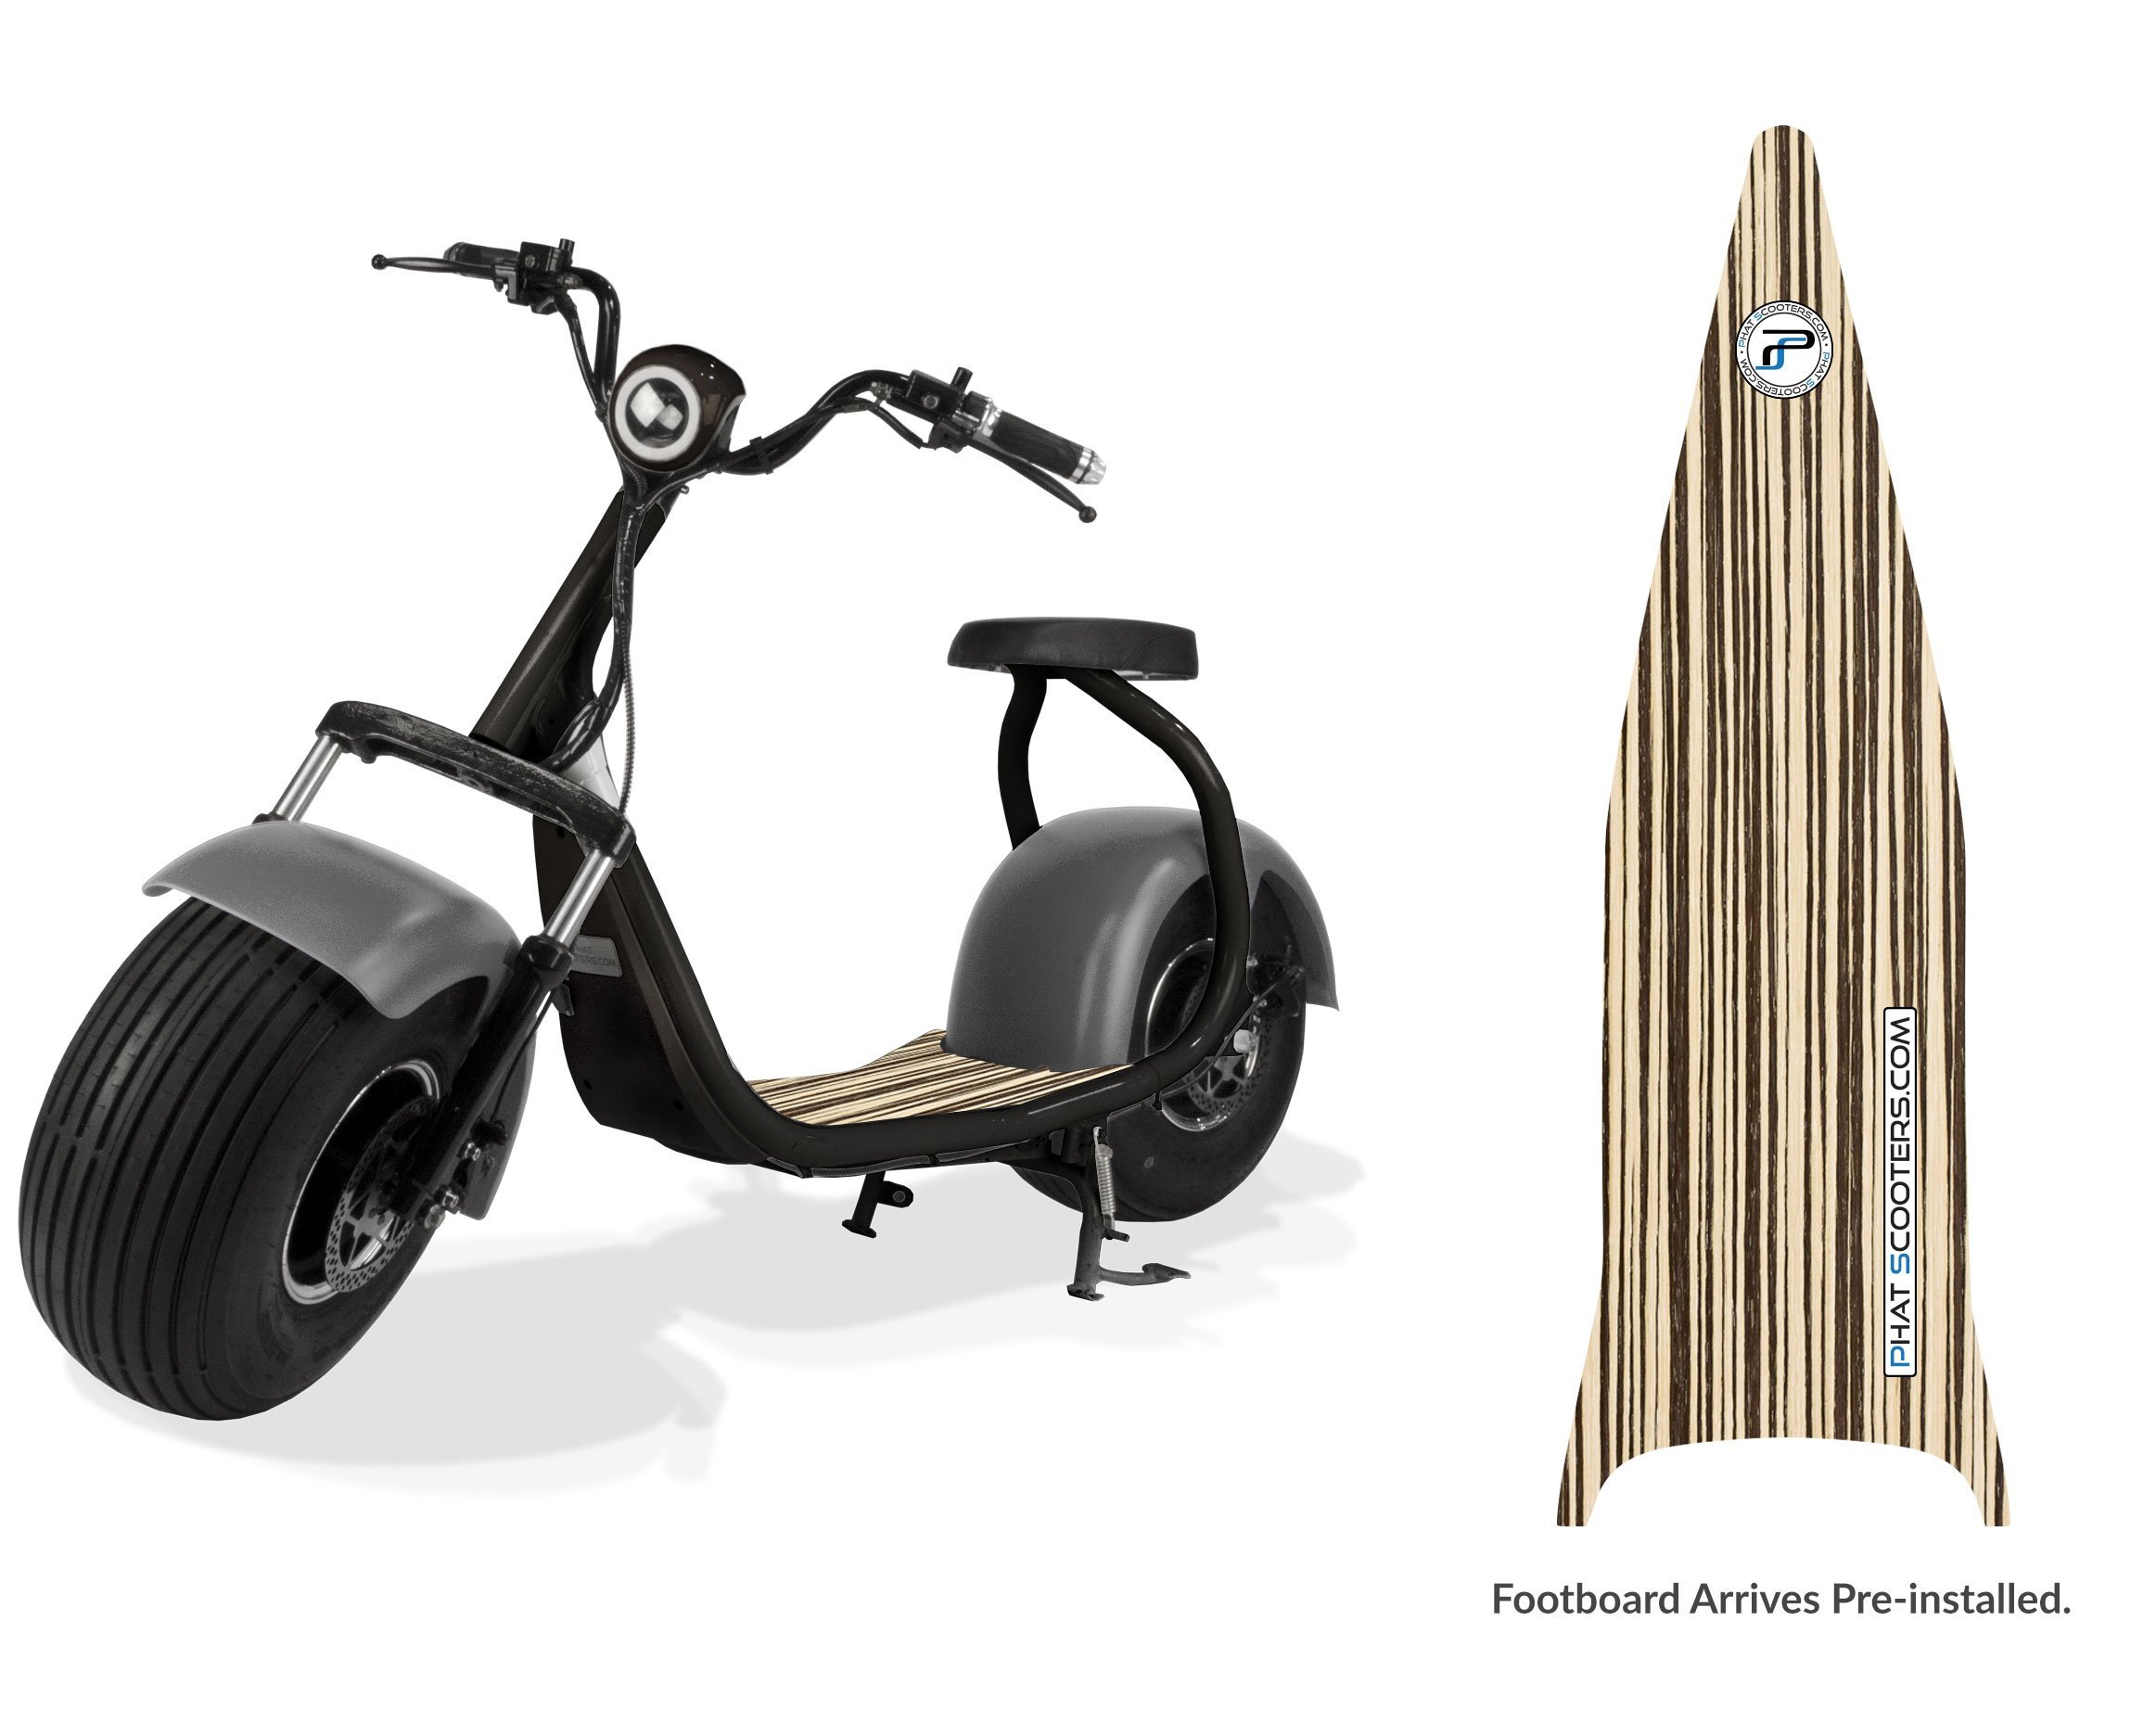 PHAT SCOOTERS - Phatty Sport Electric Scooter - Matte Black Frame - Gunmetal Fenders - Light Wood Deck by PHAT SCOOTERS